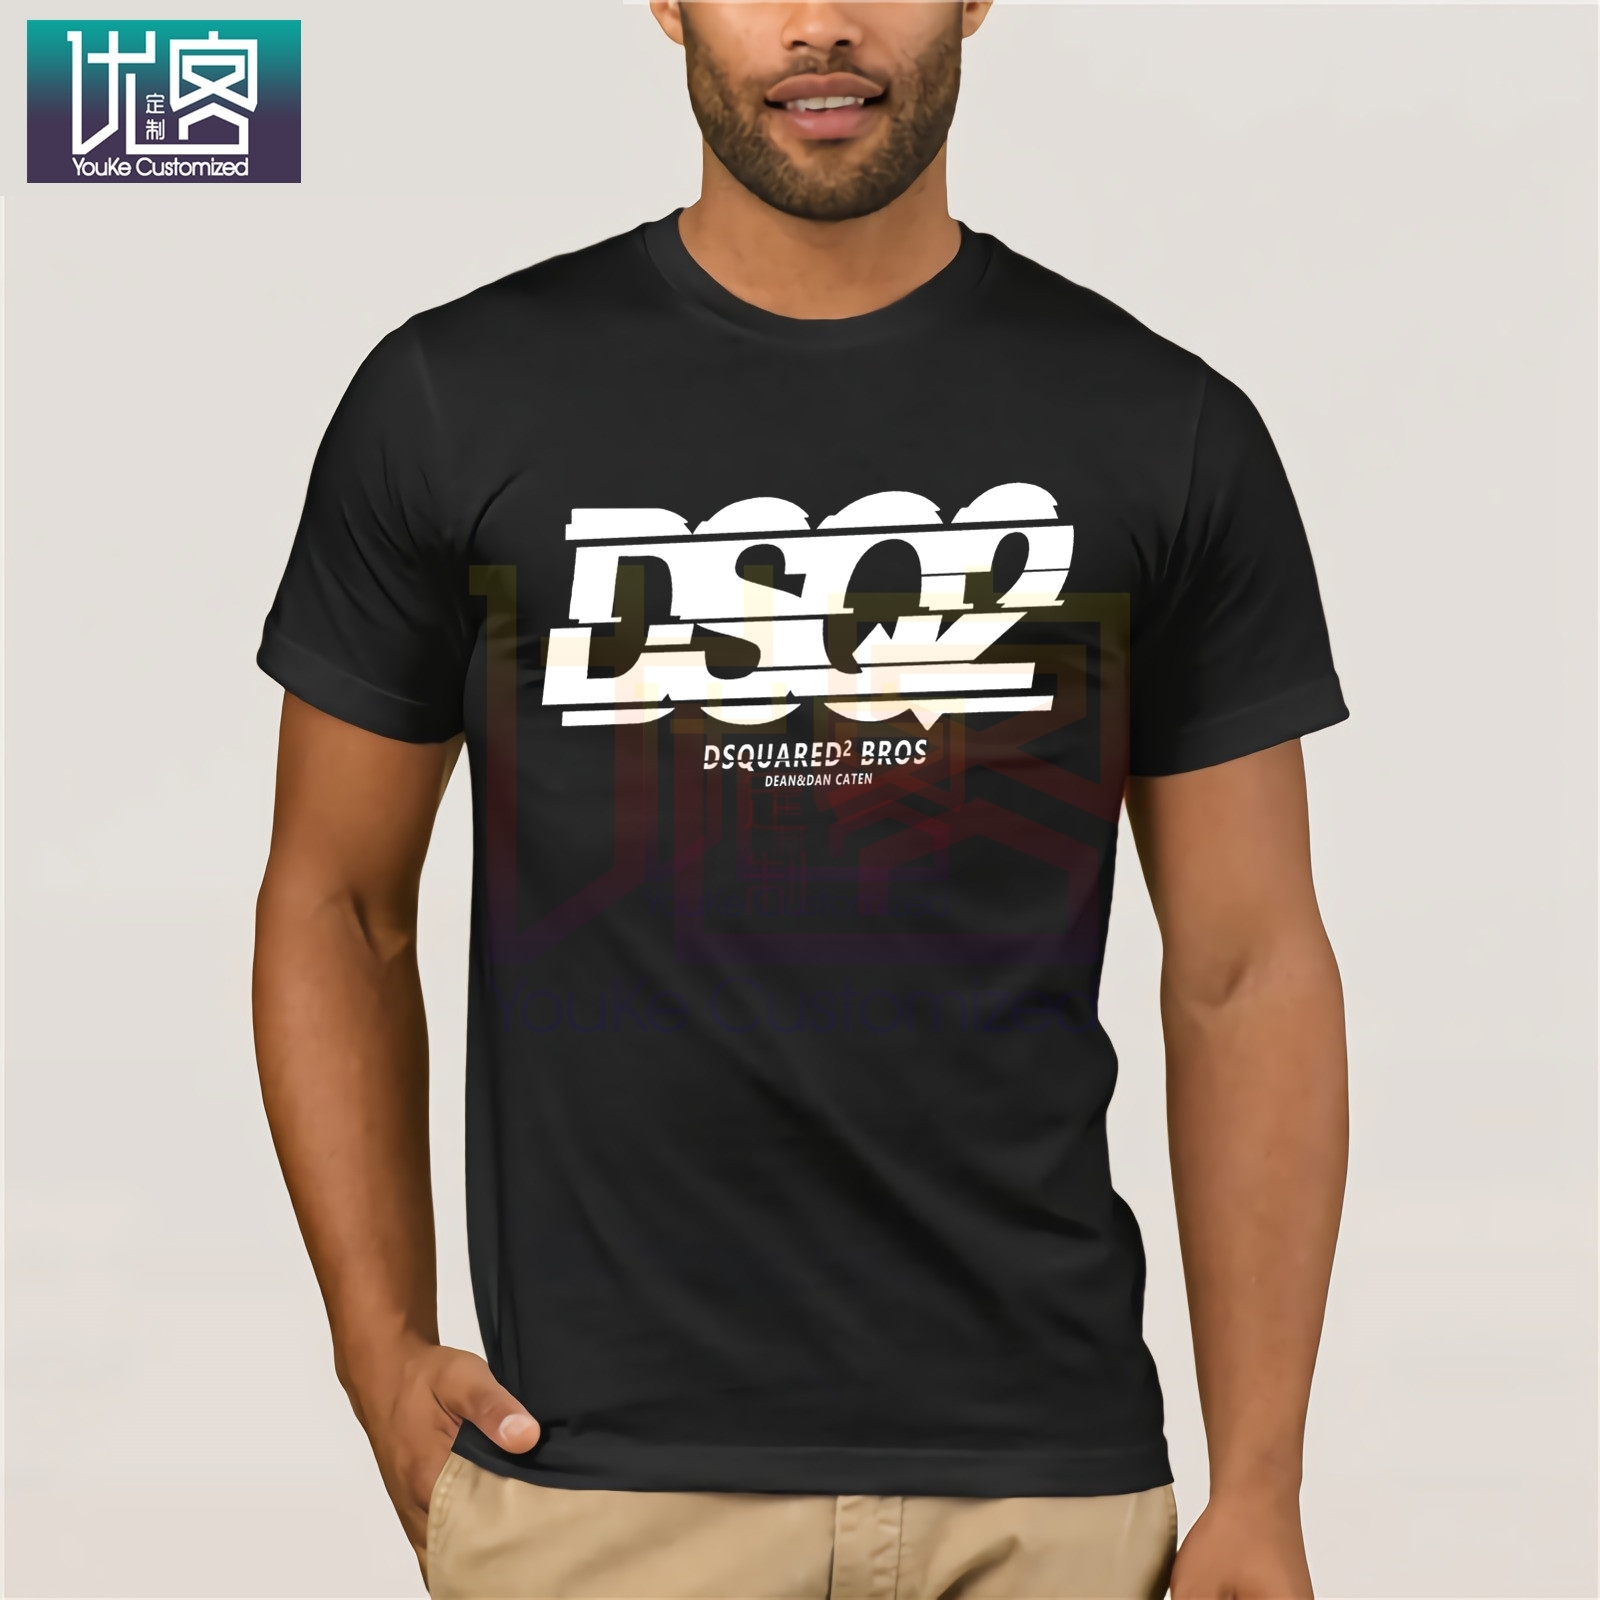 DSQICOND2 New DSQ2 Letter Cotton Short Sleeve T Shirt For Men Summer Short Sleeve Cool T-shirt Funny Tees Cotton Tops T Shirt